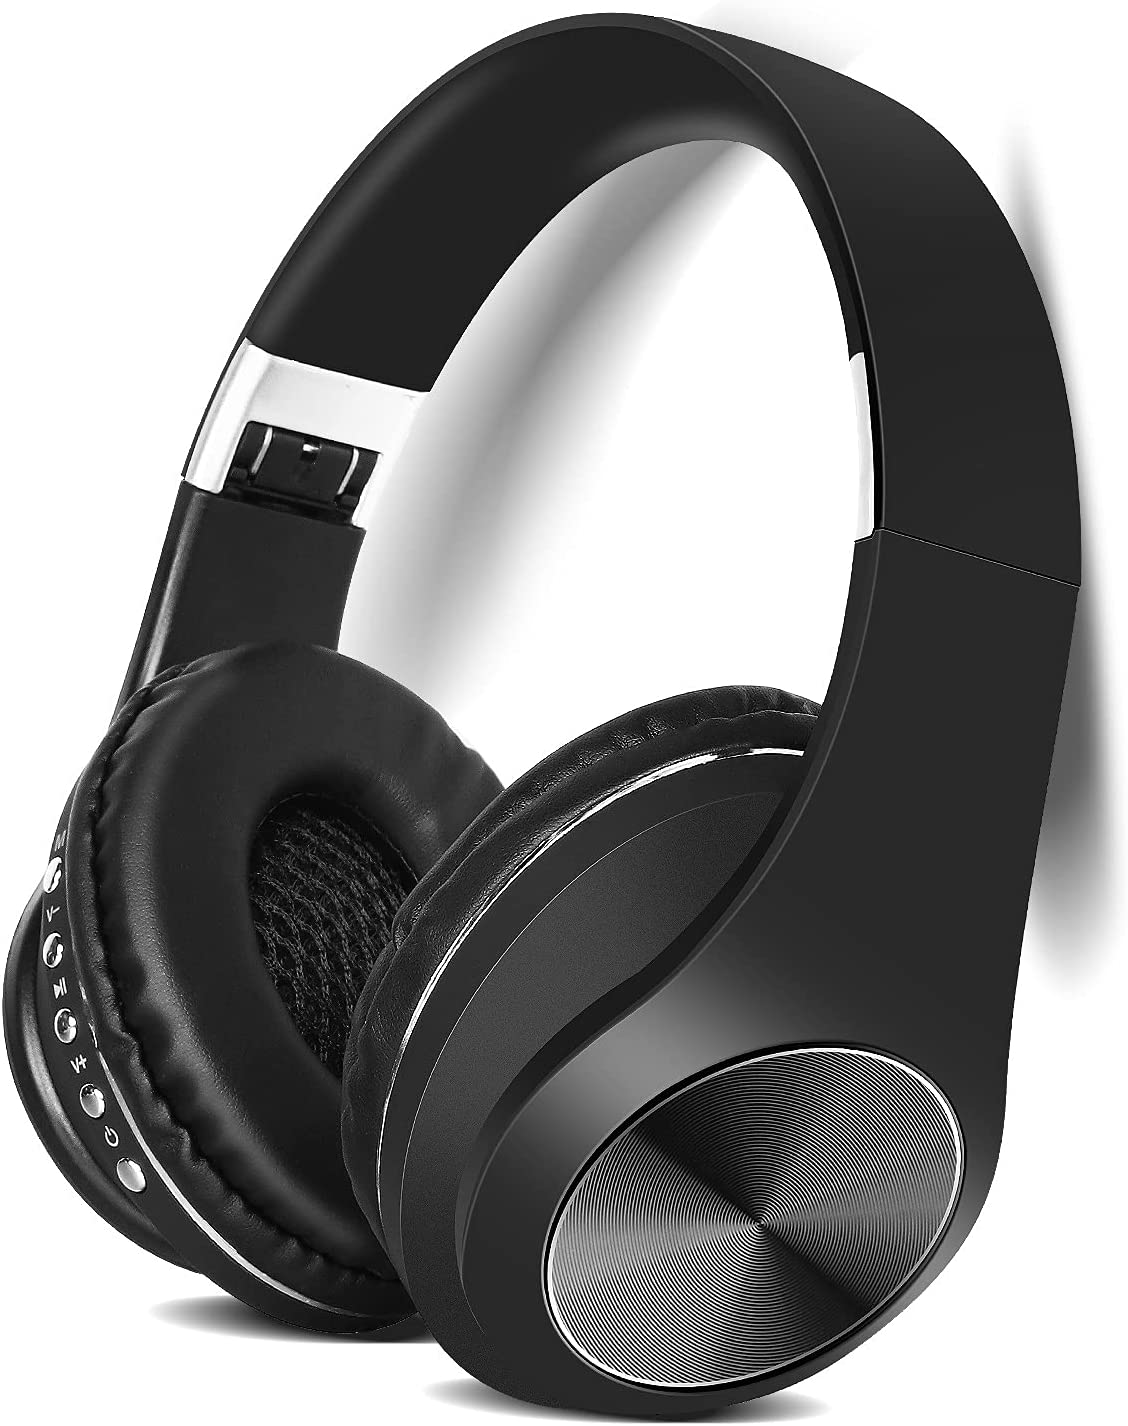 UrbanX At the price UX991 Wireless Industry Leading with Headphones Cheap Overhead